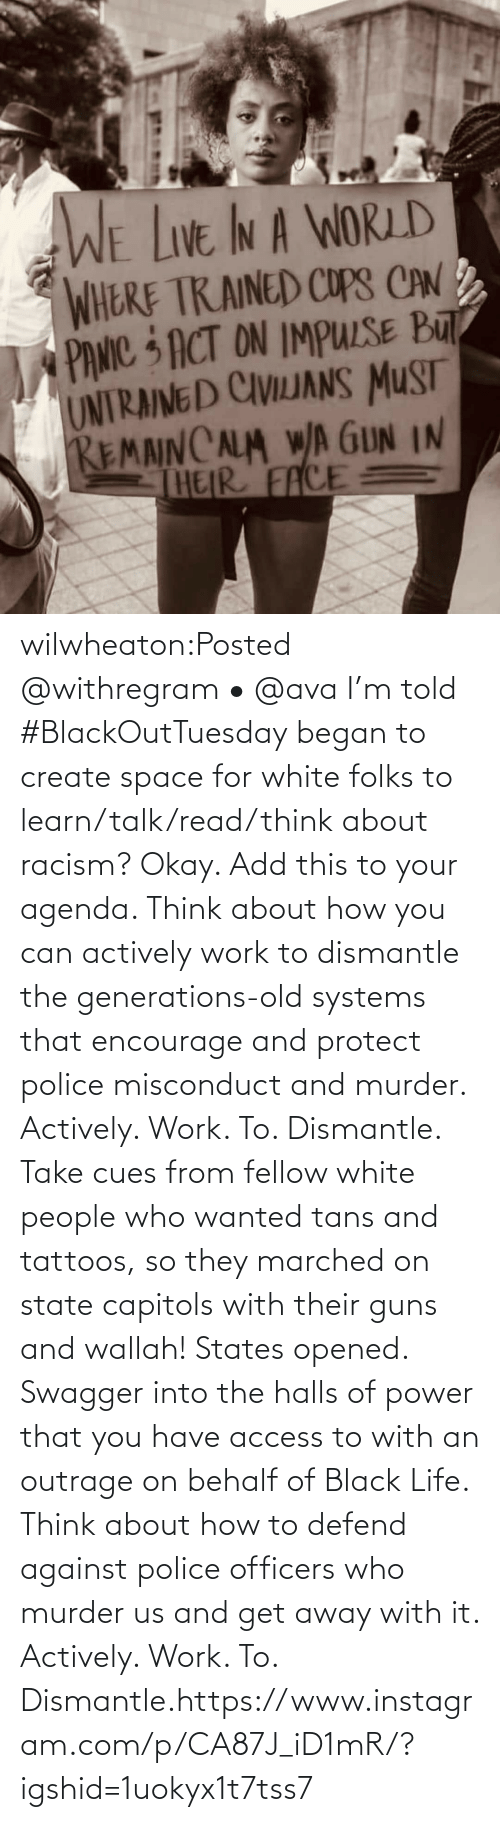 Okay: wilwheaton:Posted @withregram • @ava I'm told #BlackOutTuesday began to create space for white folks to learn/talk/read/think about racism? Okay. Add this to your agenda. Think about how you can actively work to dismantle the generations-old systems that encourage and protect police misconduct and murder. Actively. Work. To. Dismantle. Take cues from fellow white people who wanted tans and tattoos, so they marched on state capitols with their guns and wallah! States opened. Swagger into the halls of power that you have access to with an outrage on behalf of Black Life. Think about how to defend against police officers who murder us and get away with it. Actively. Work. To. Dismantle.https://www.instagram.com/p/CA87J_iD1mR/?igshid=1uokyx1t7tss7